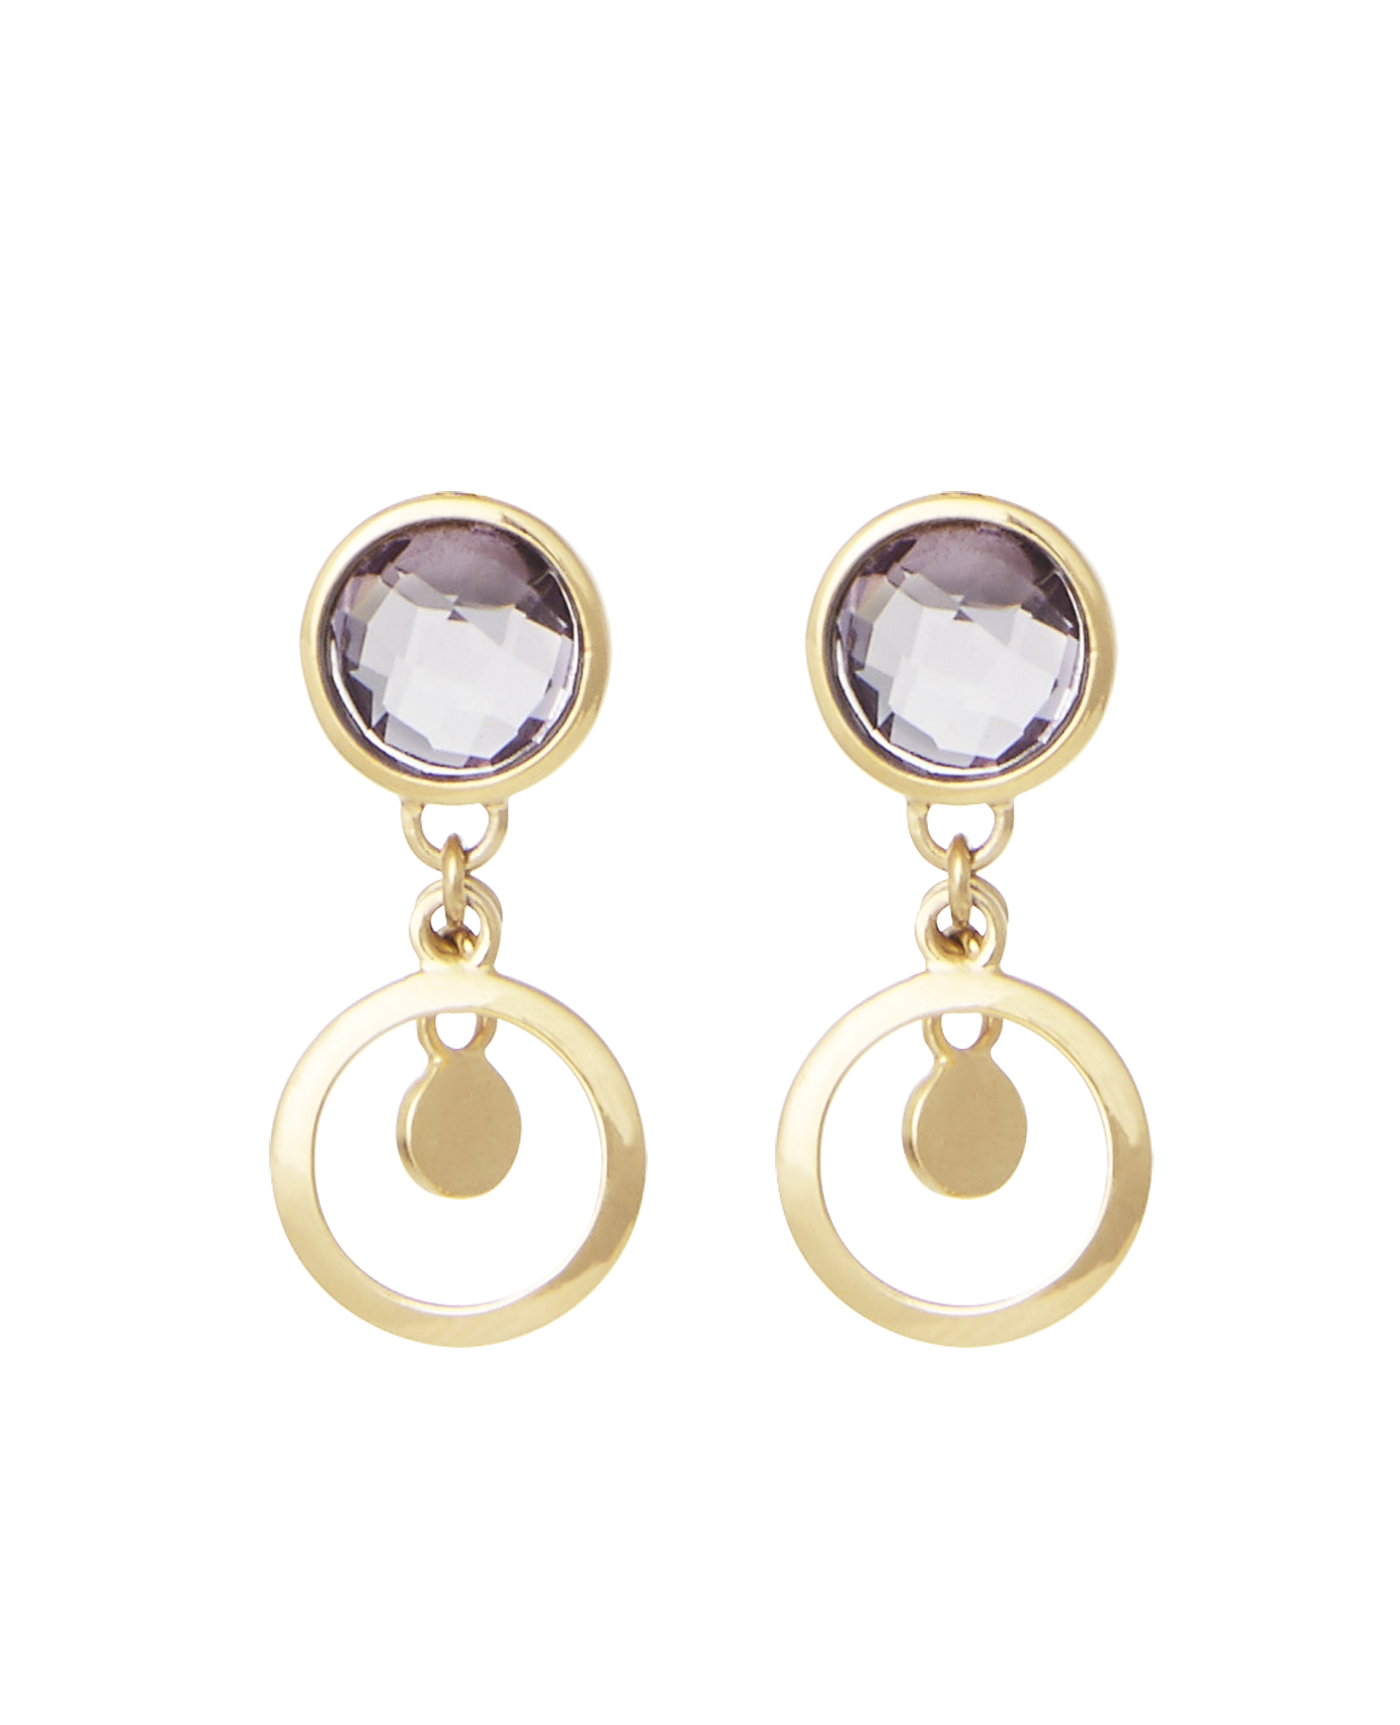 Veronica drop earring amethyst